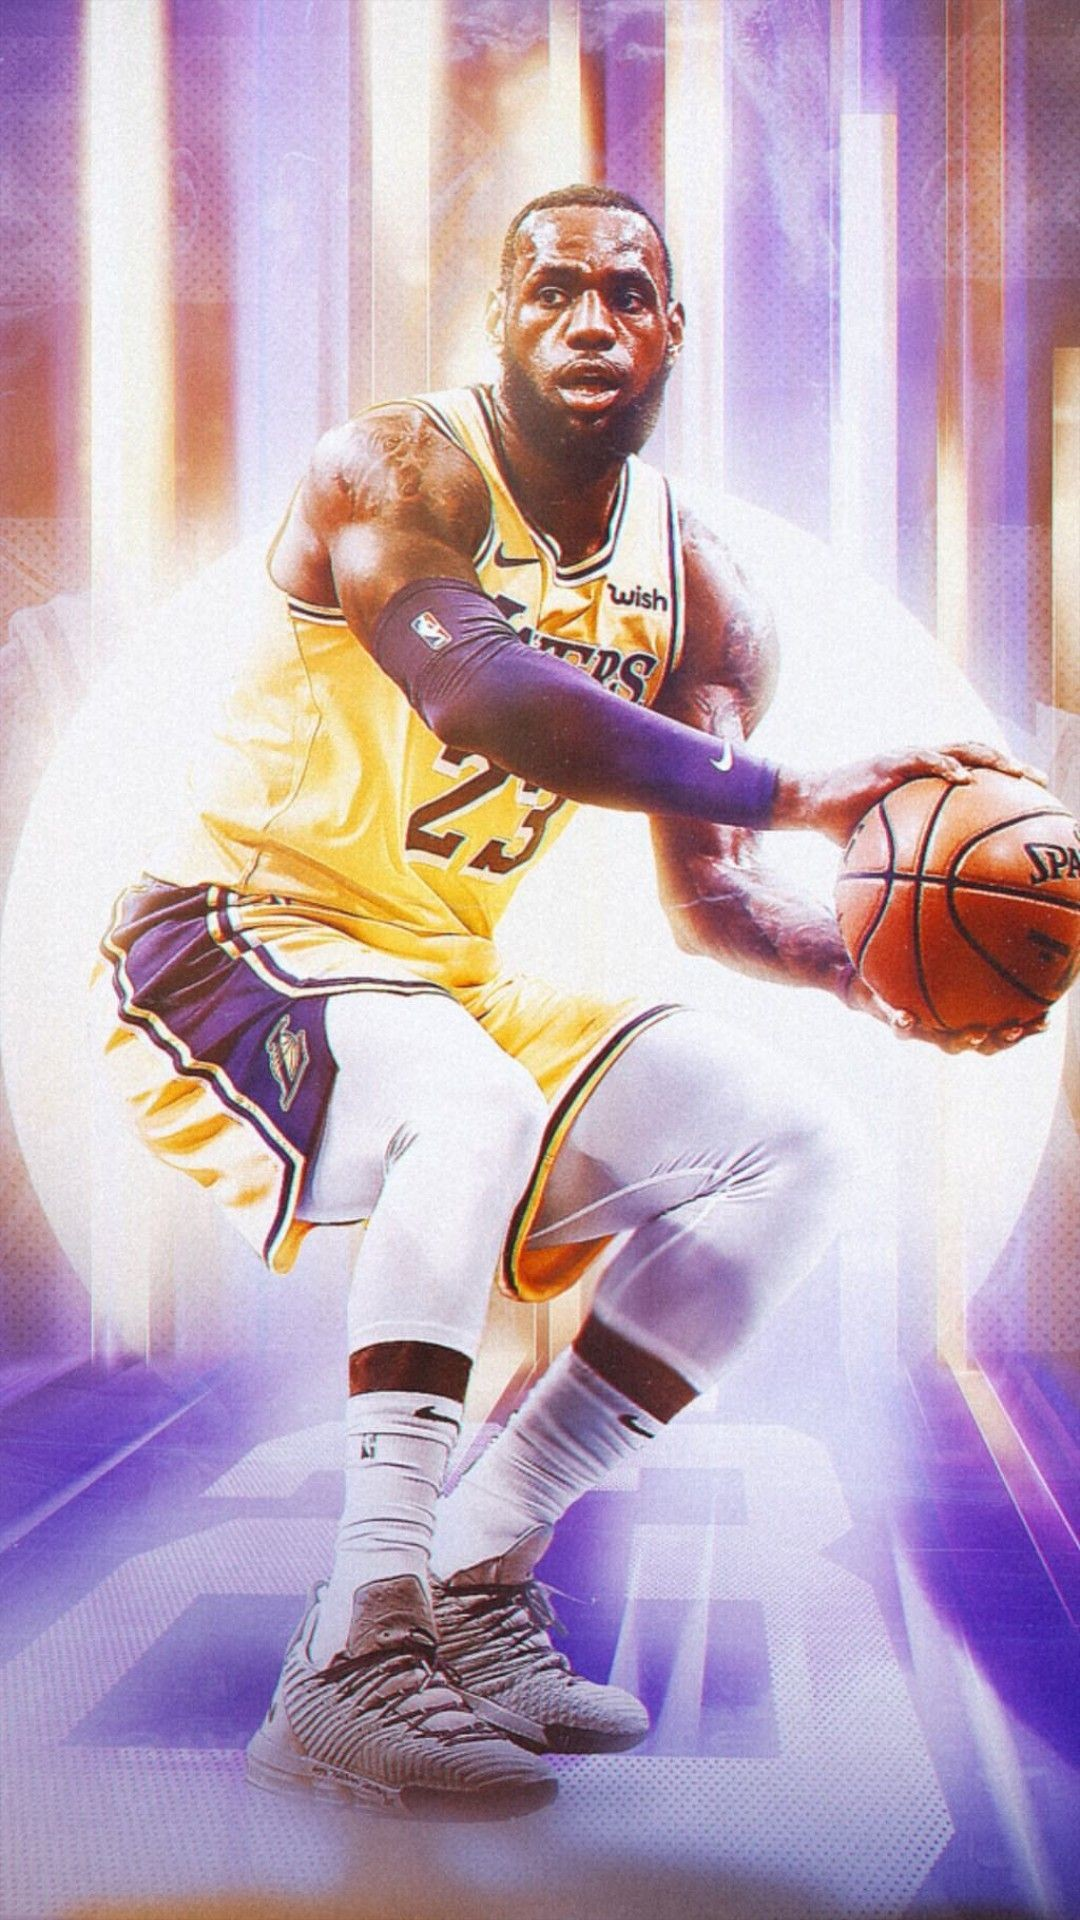 1080x1920 LeBron James LA Lakers wallpaper Lakers Wallpaper, Magic Johnson, La  Lakers, Los Angeles